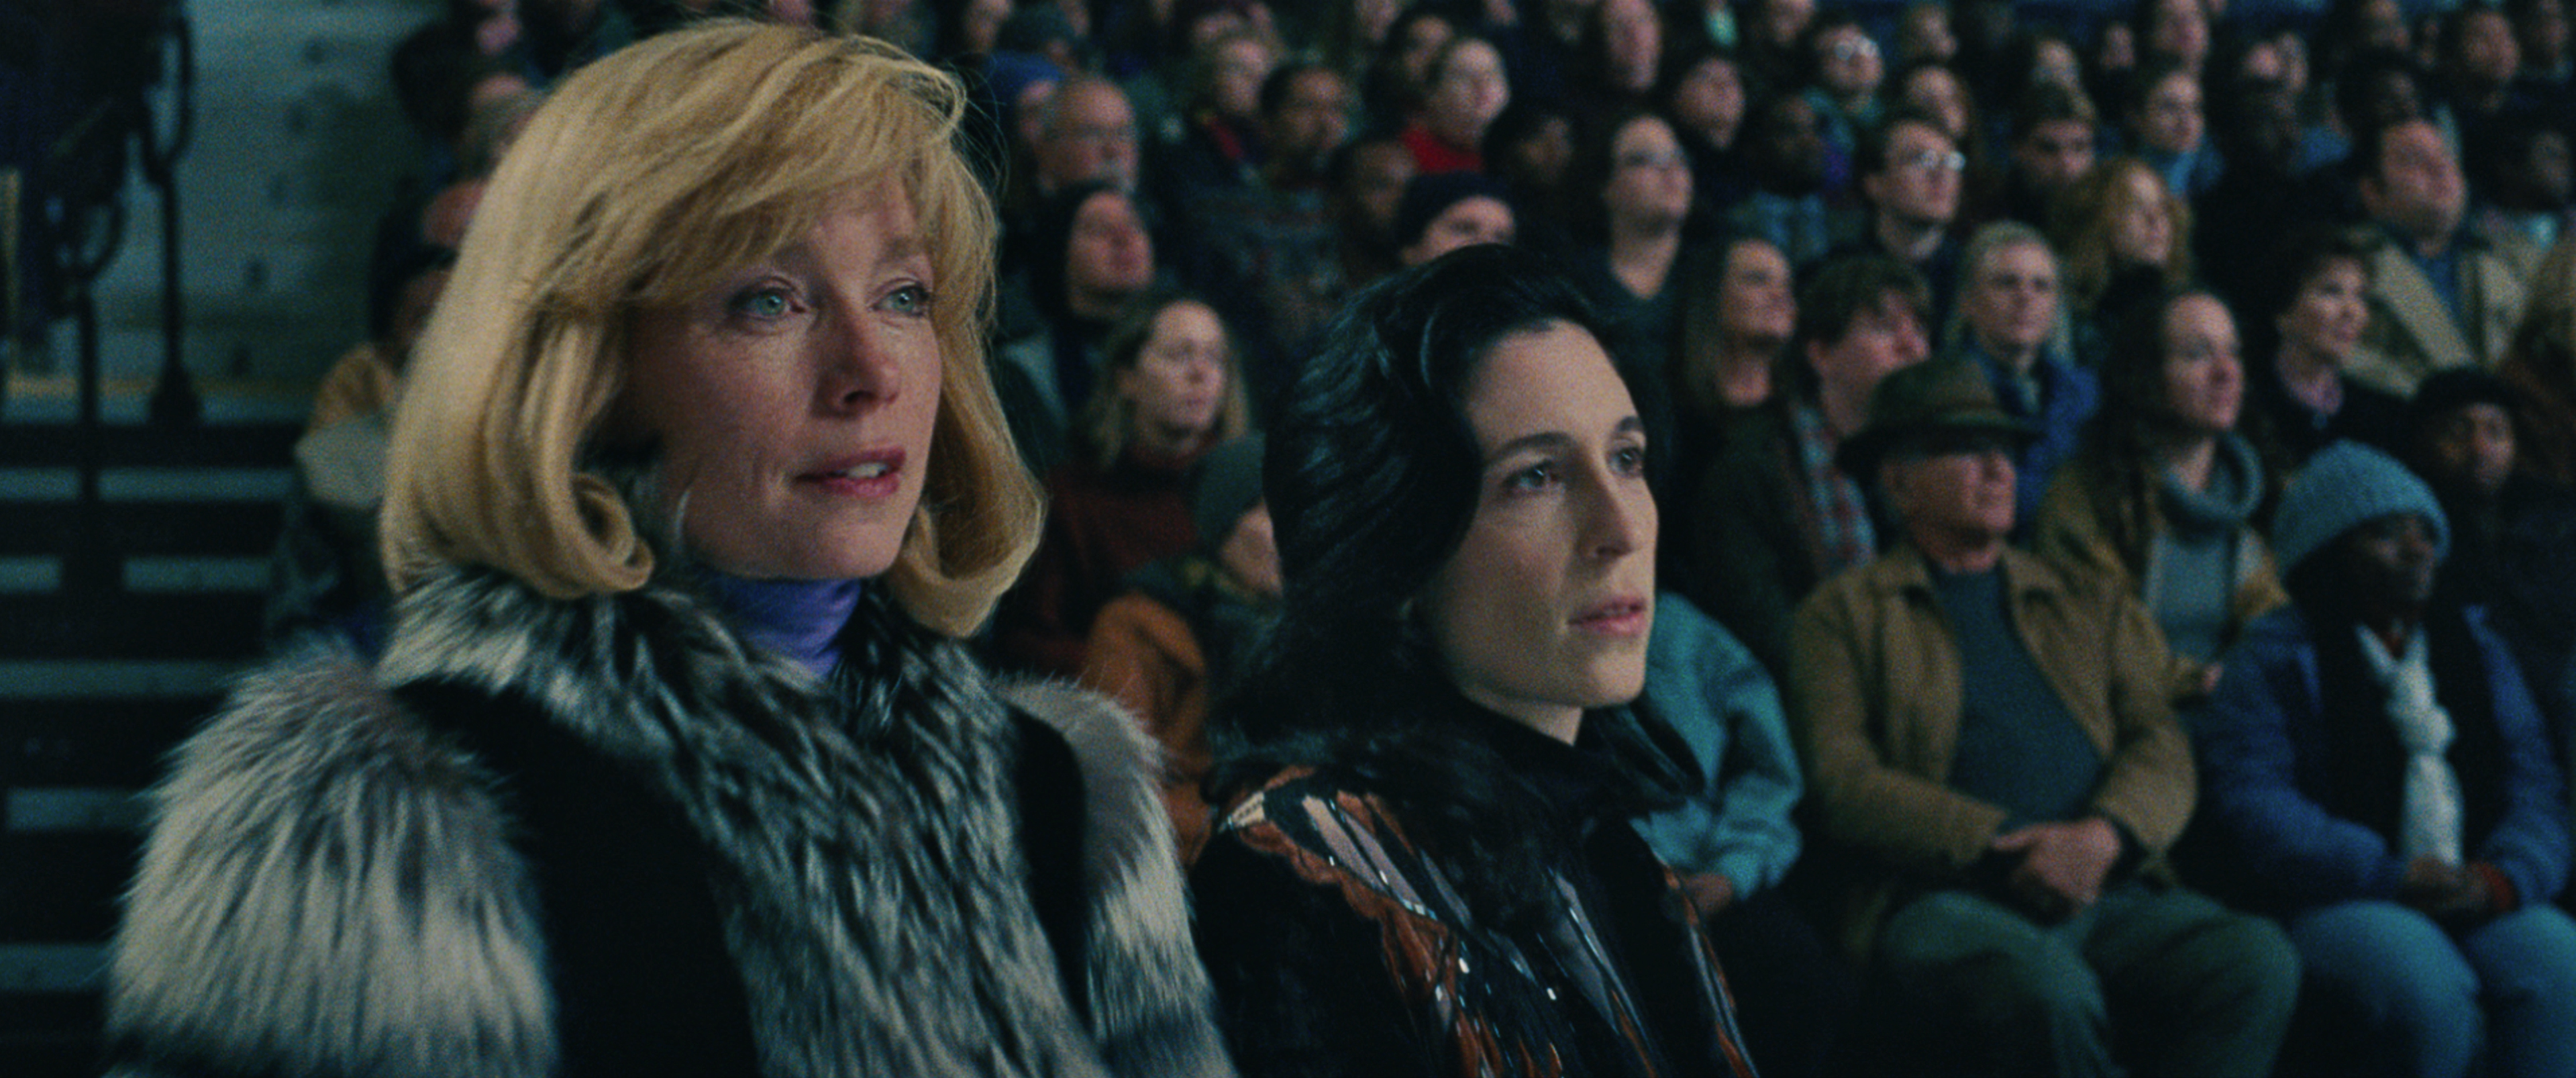 4-Coach Diane Rawlinson (Julianne Nicholson) watches the ice in I, TONYA, courtesy of NEON